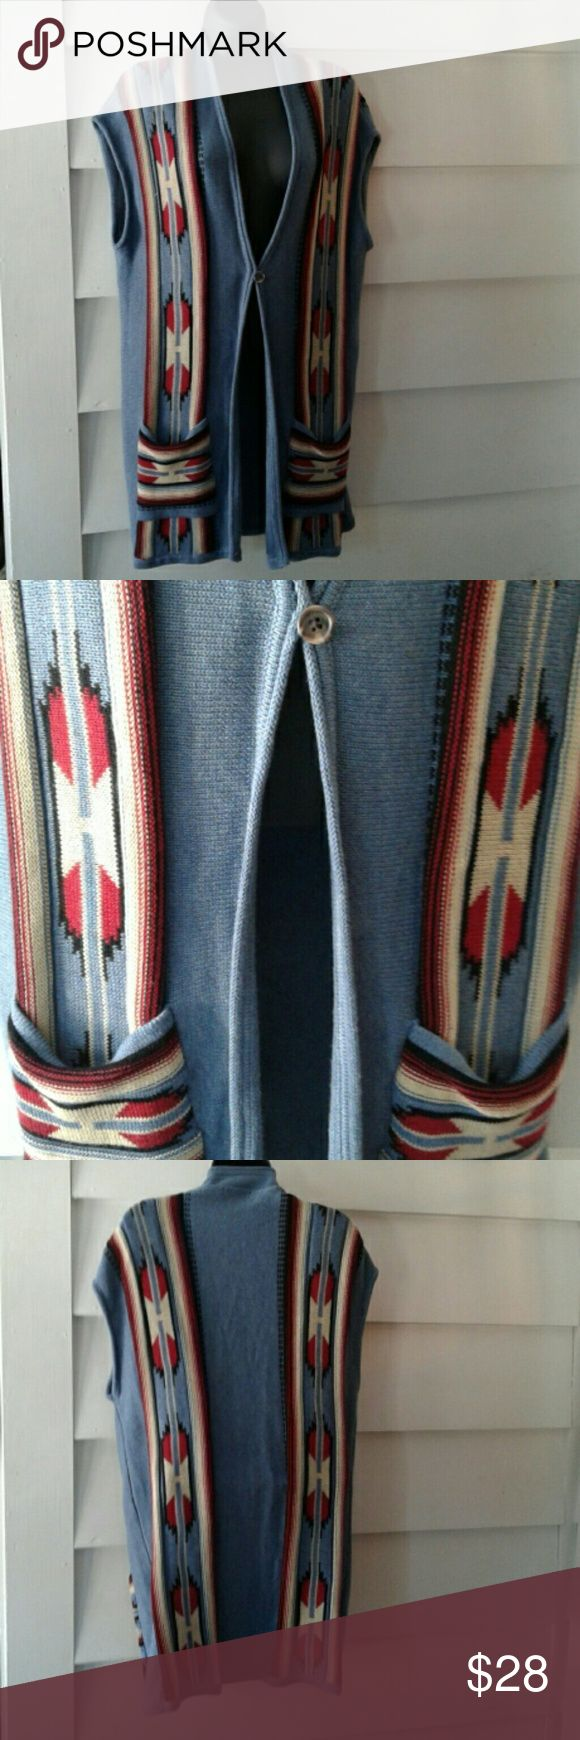 """Chaps Sweater Vest Beautiful Southwestern design. 78% cotton, 22% polyester. Machine wash. Underarm to underarm approx 23"""". Neck to hem (as pictured) approx 33"""". Chaps Sweaters"""